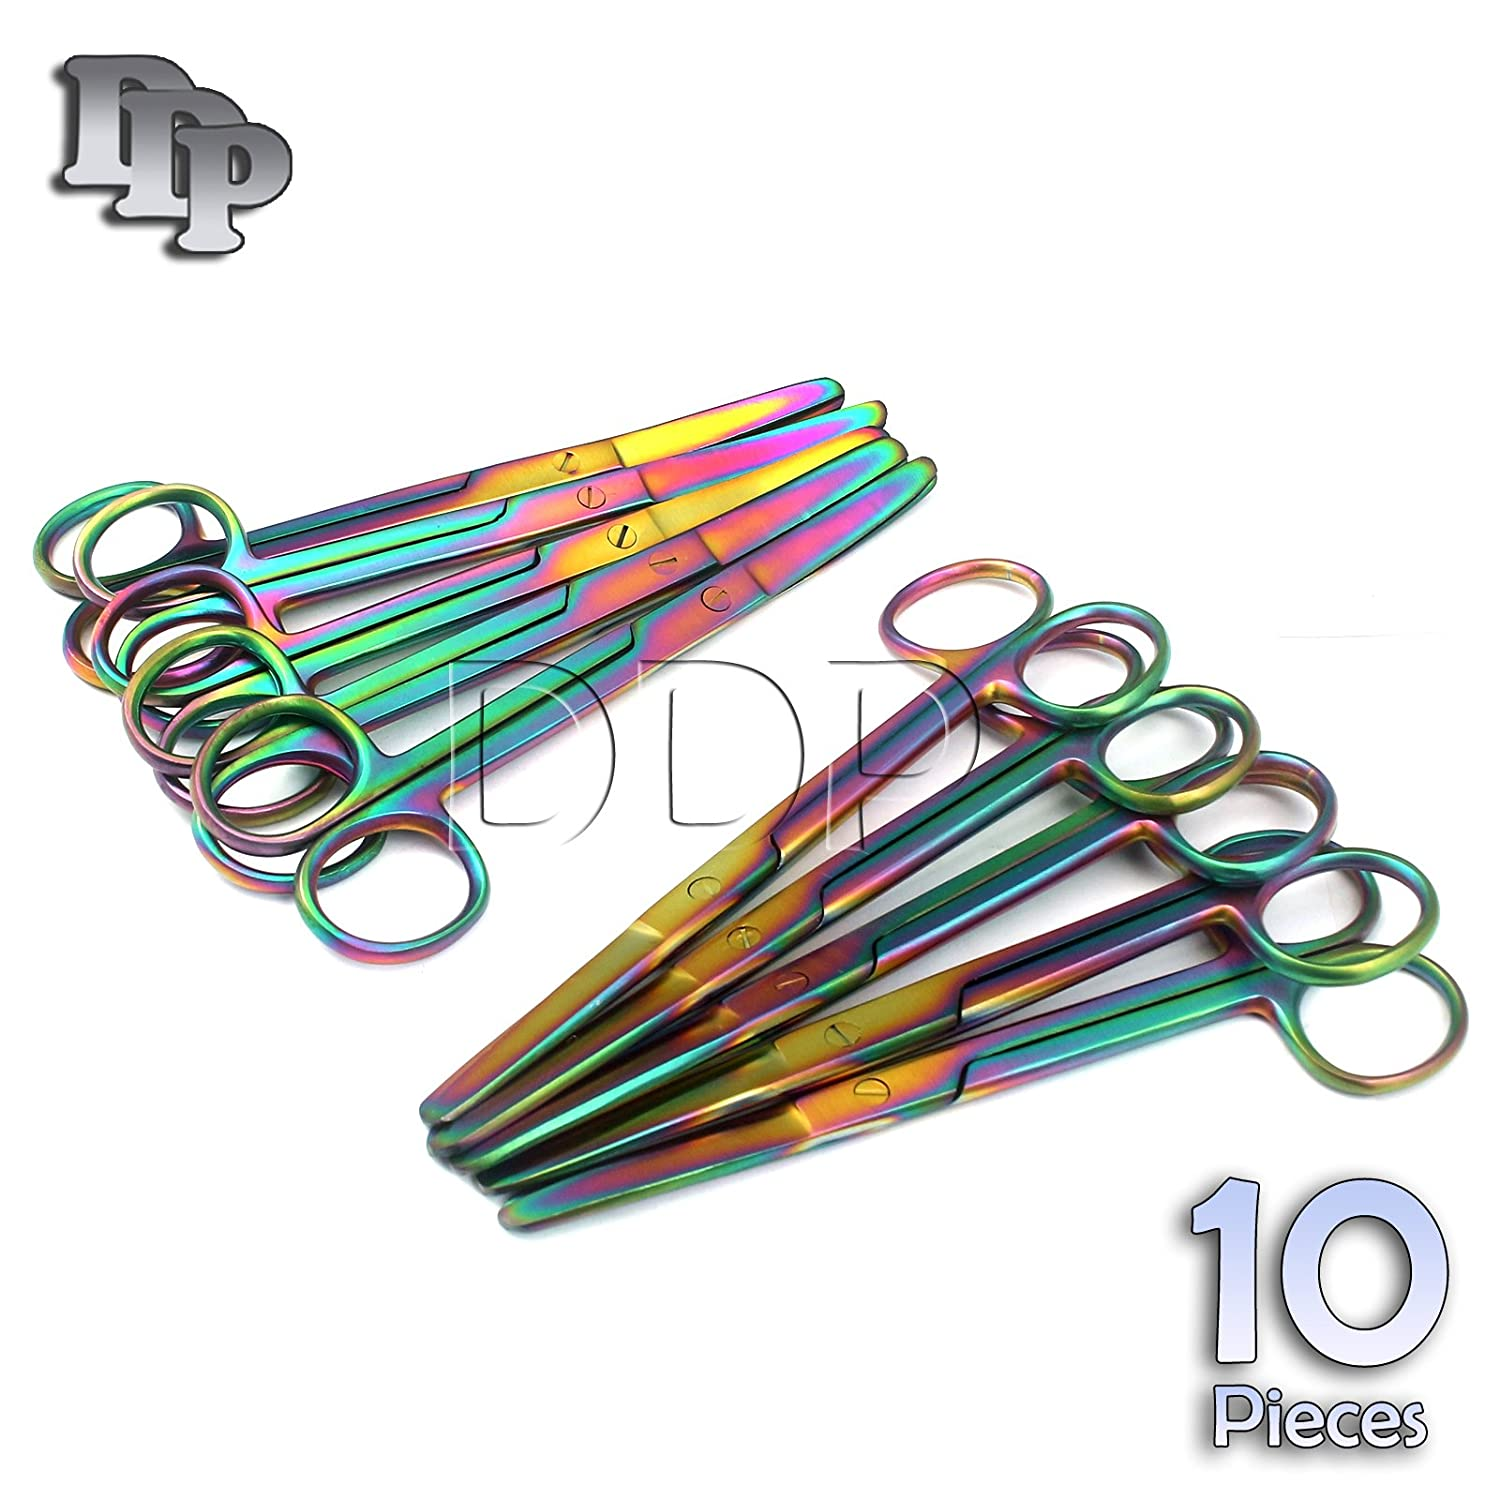 DDP SET OF 10 MULTI TITANIUM COLOR RAINBOW OPERATING SCISSOR BLUNT/BLUNT 5.5